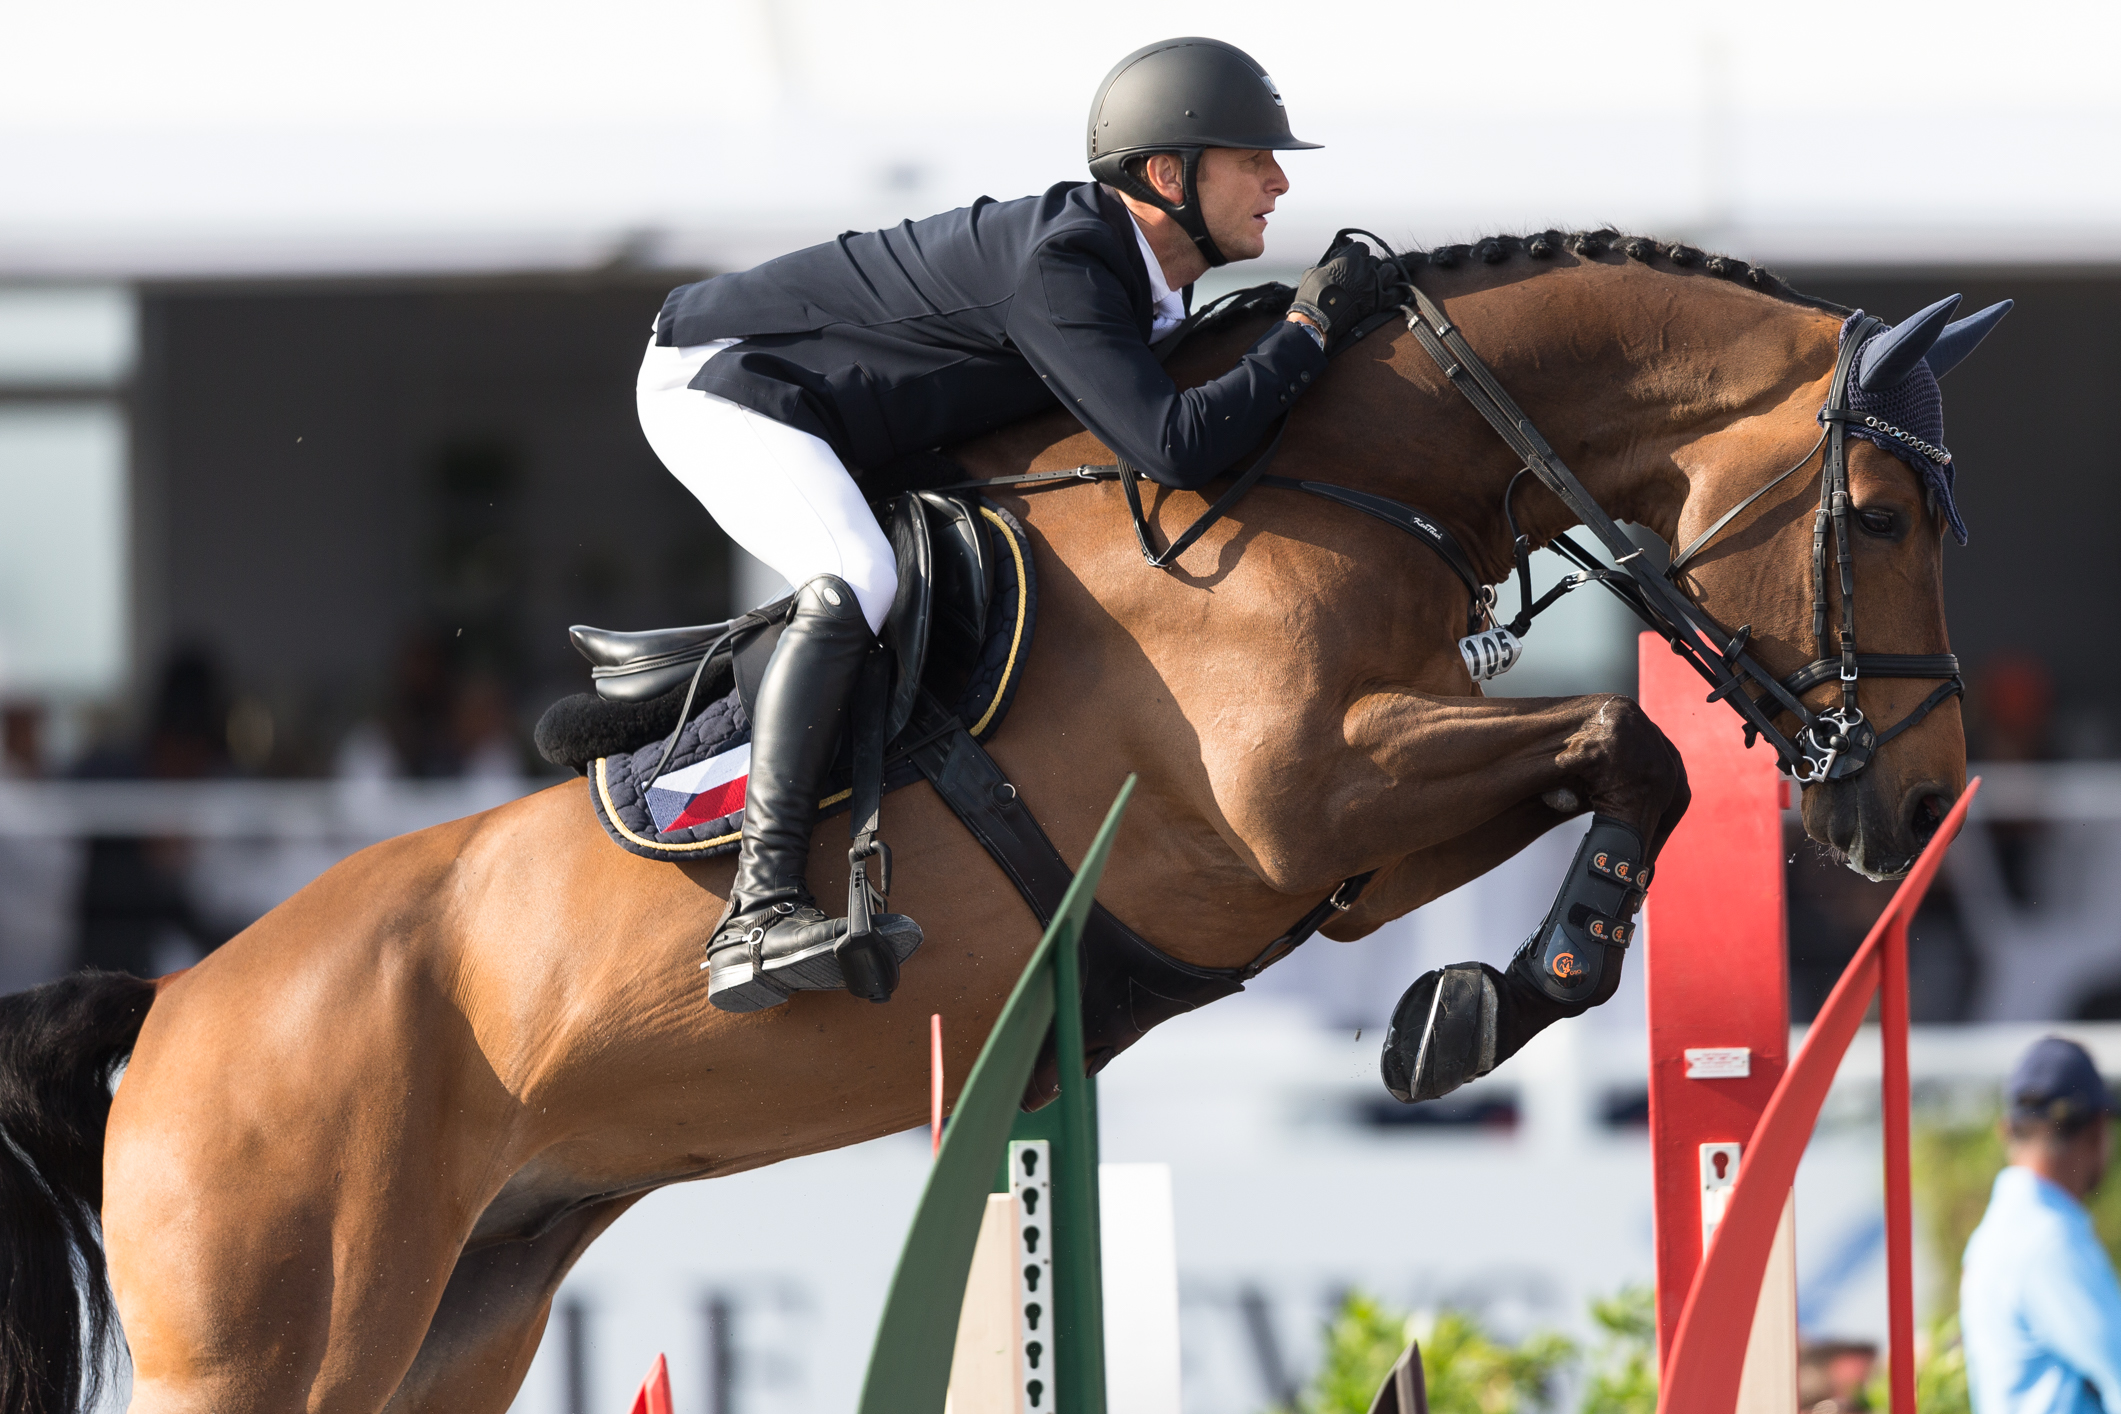 Acovaro and Ales Opartrny win the Dubai Grand Prix!!